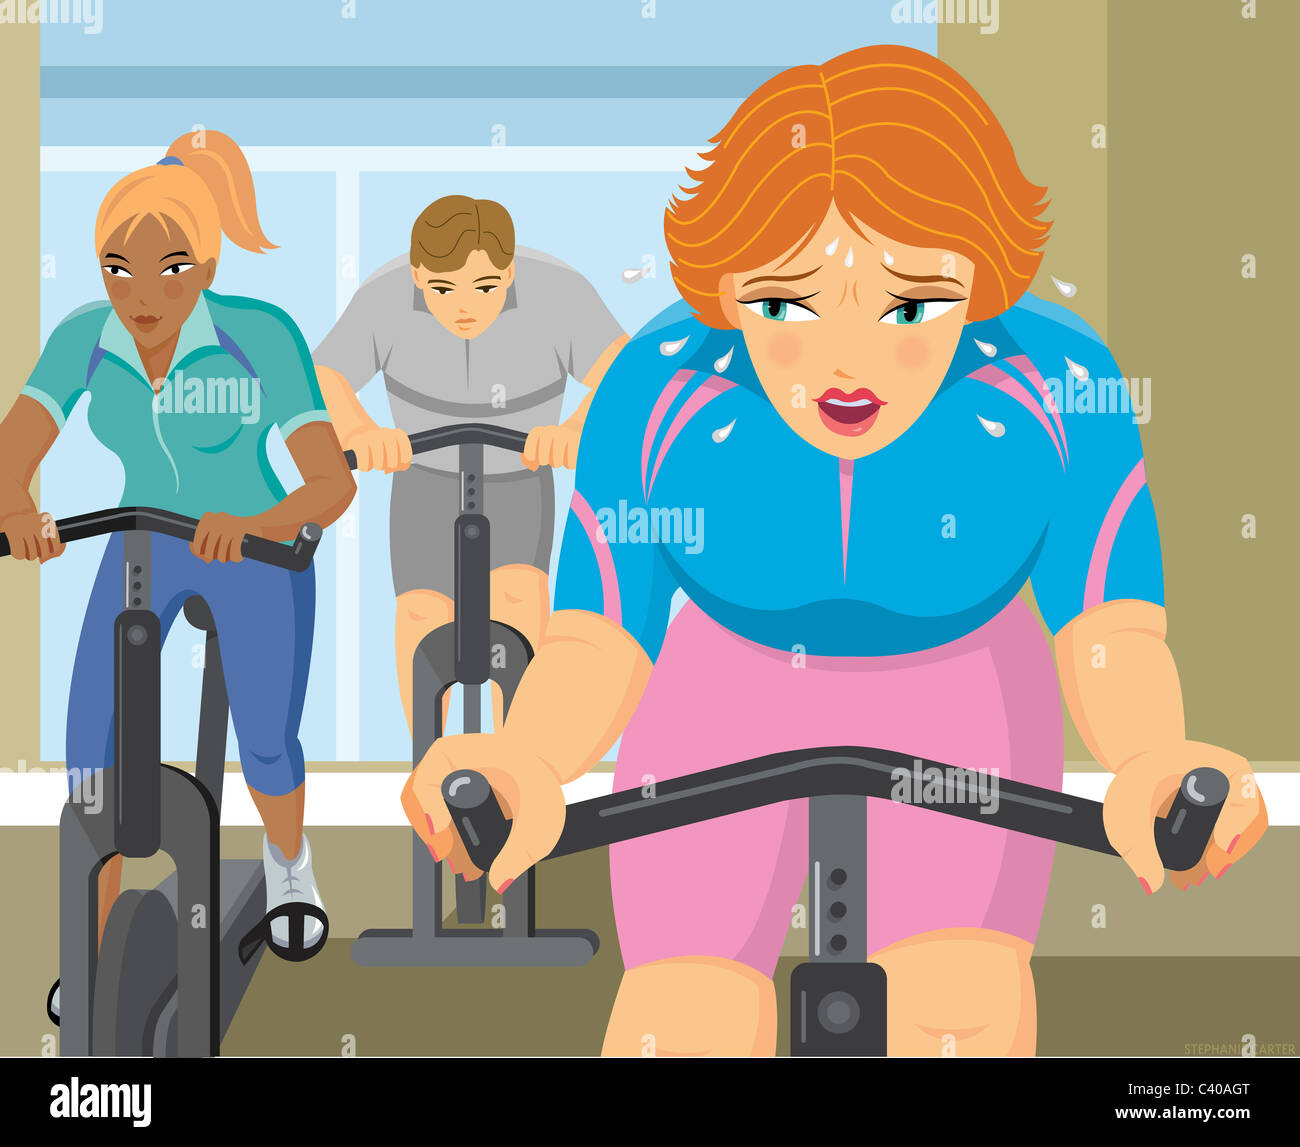 Illustration of a woman in a cycling class - Stock Image